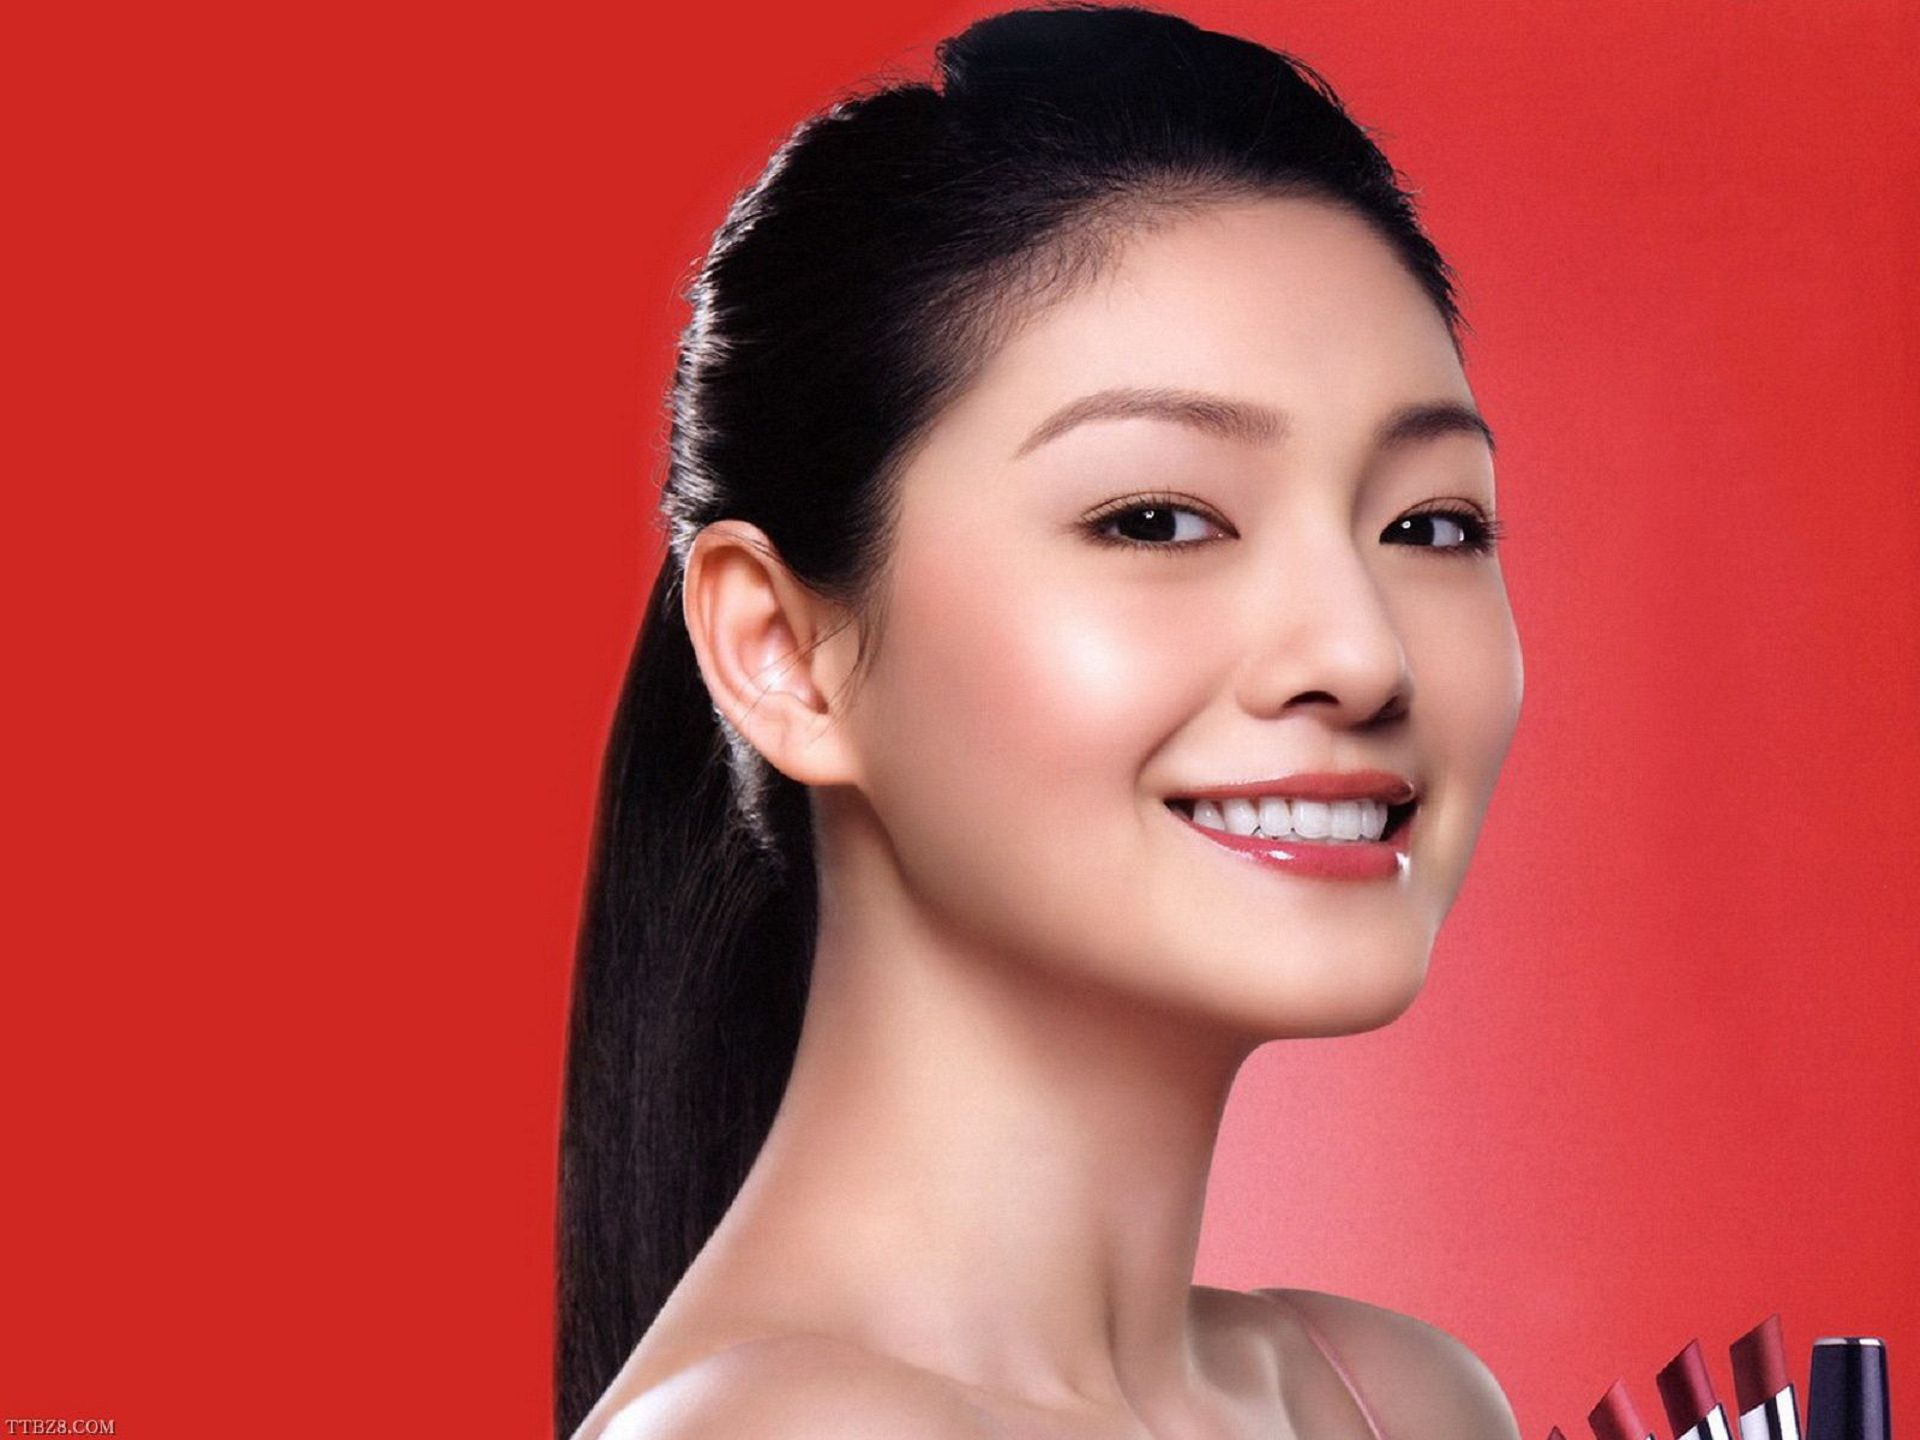 Fall Out Boy Wallpape Barbie Hsu Wallpapers Backgrounds